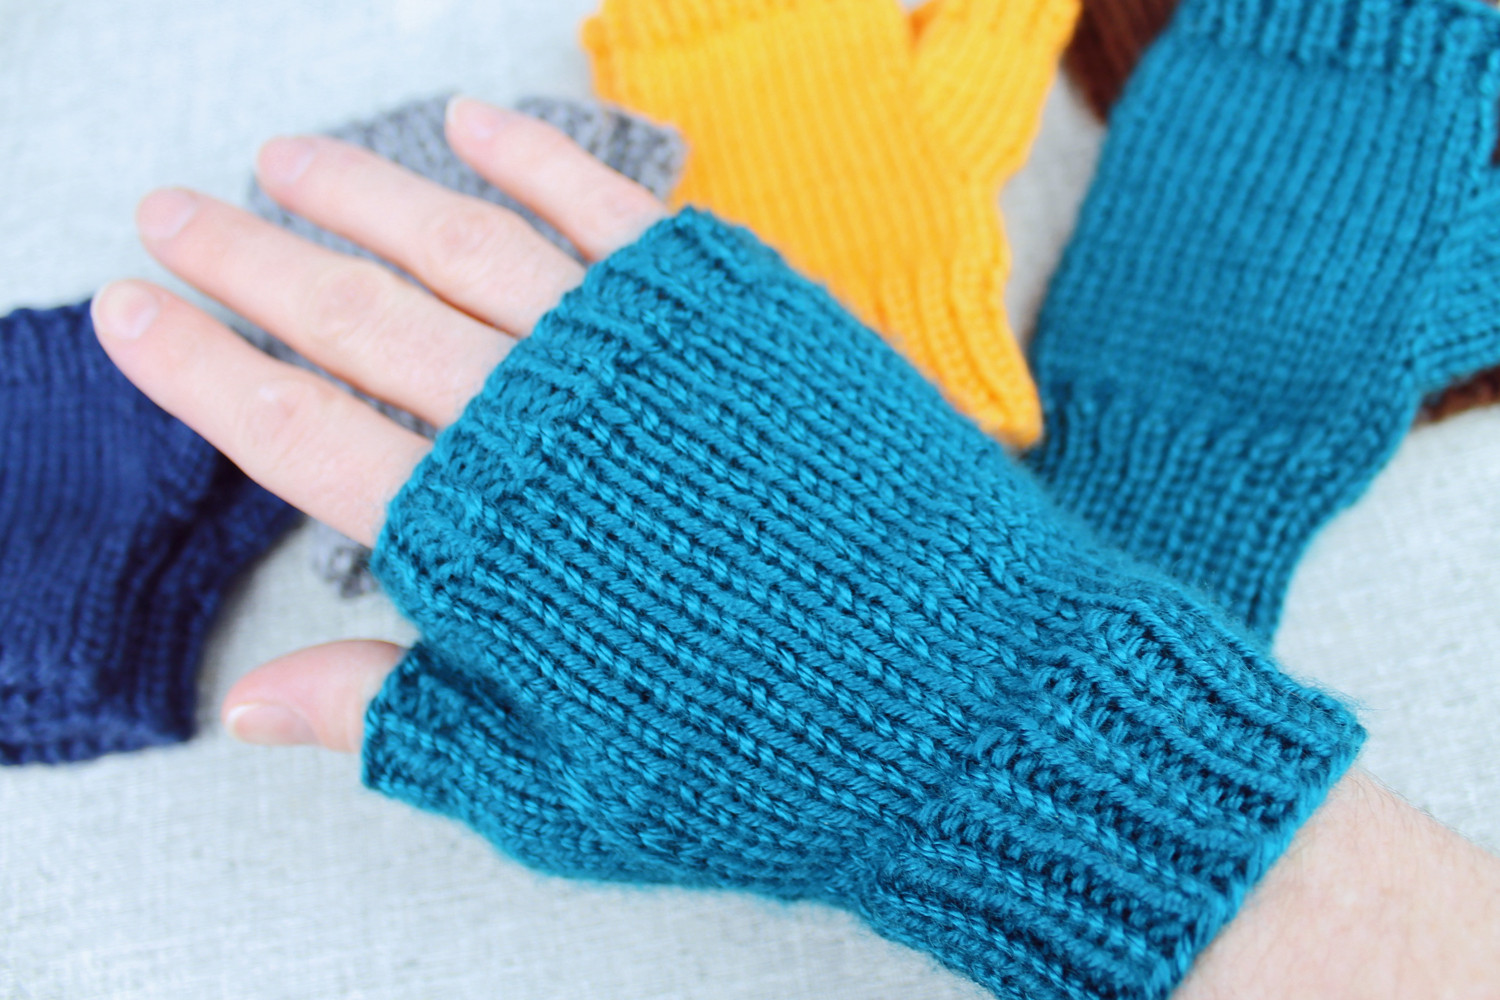 Awesome Basic Fingerless Gloves A Knitting Pattern Designed by Knitted Fingerless Mittens Of Luxury 48 Images Knitted Fingerless Mittens